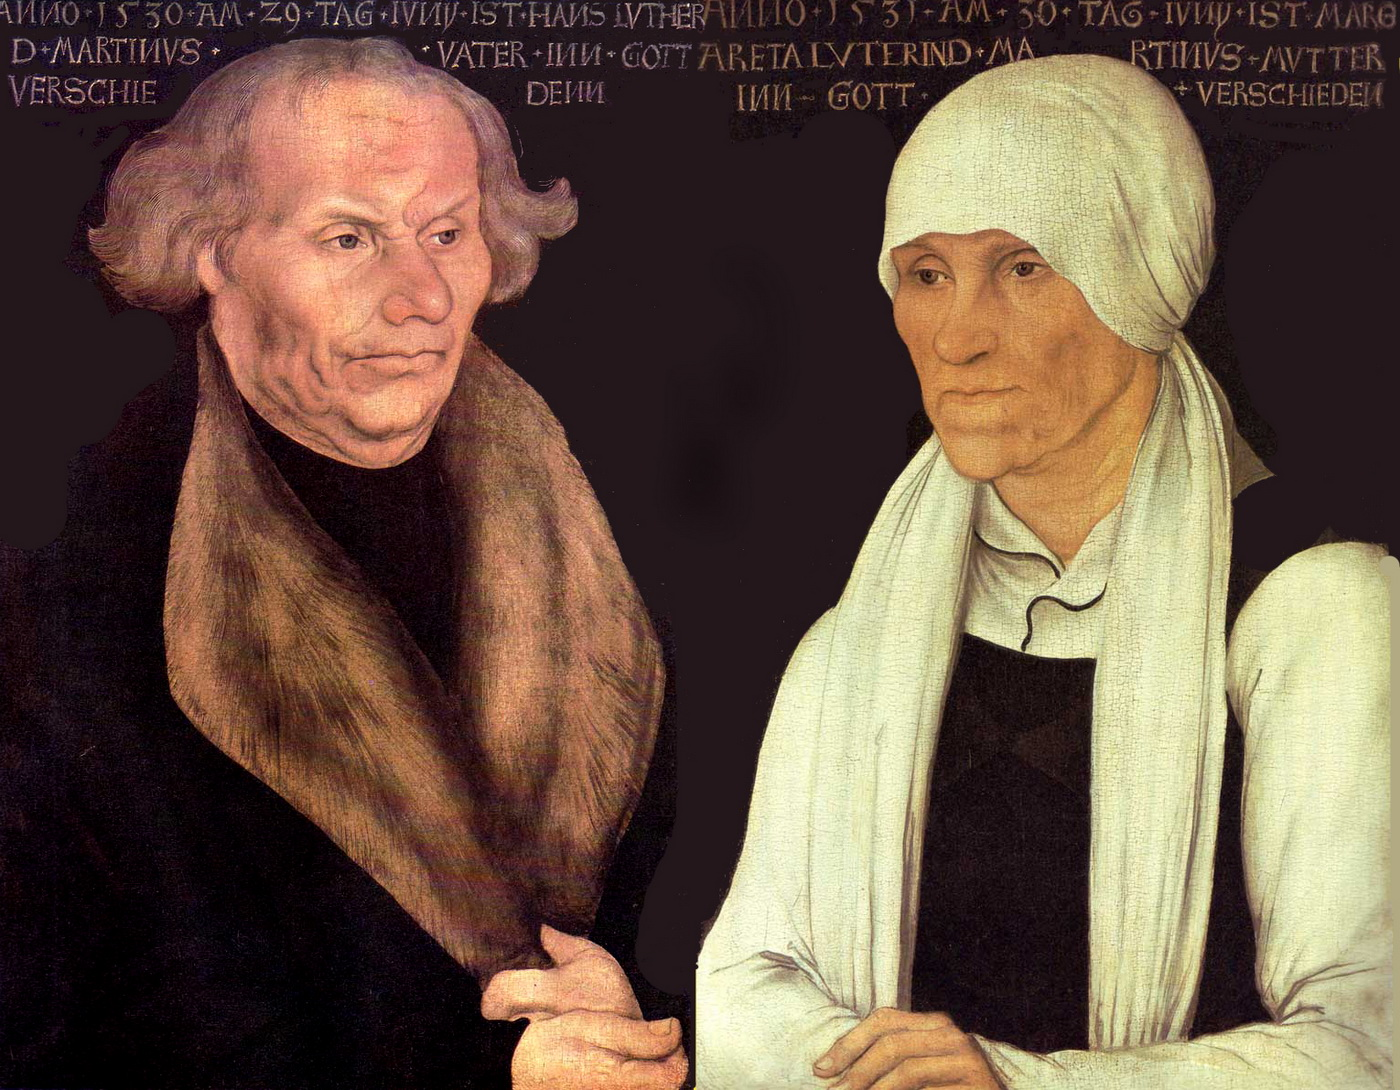 hans-and-magrethe-luther-1527-1400